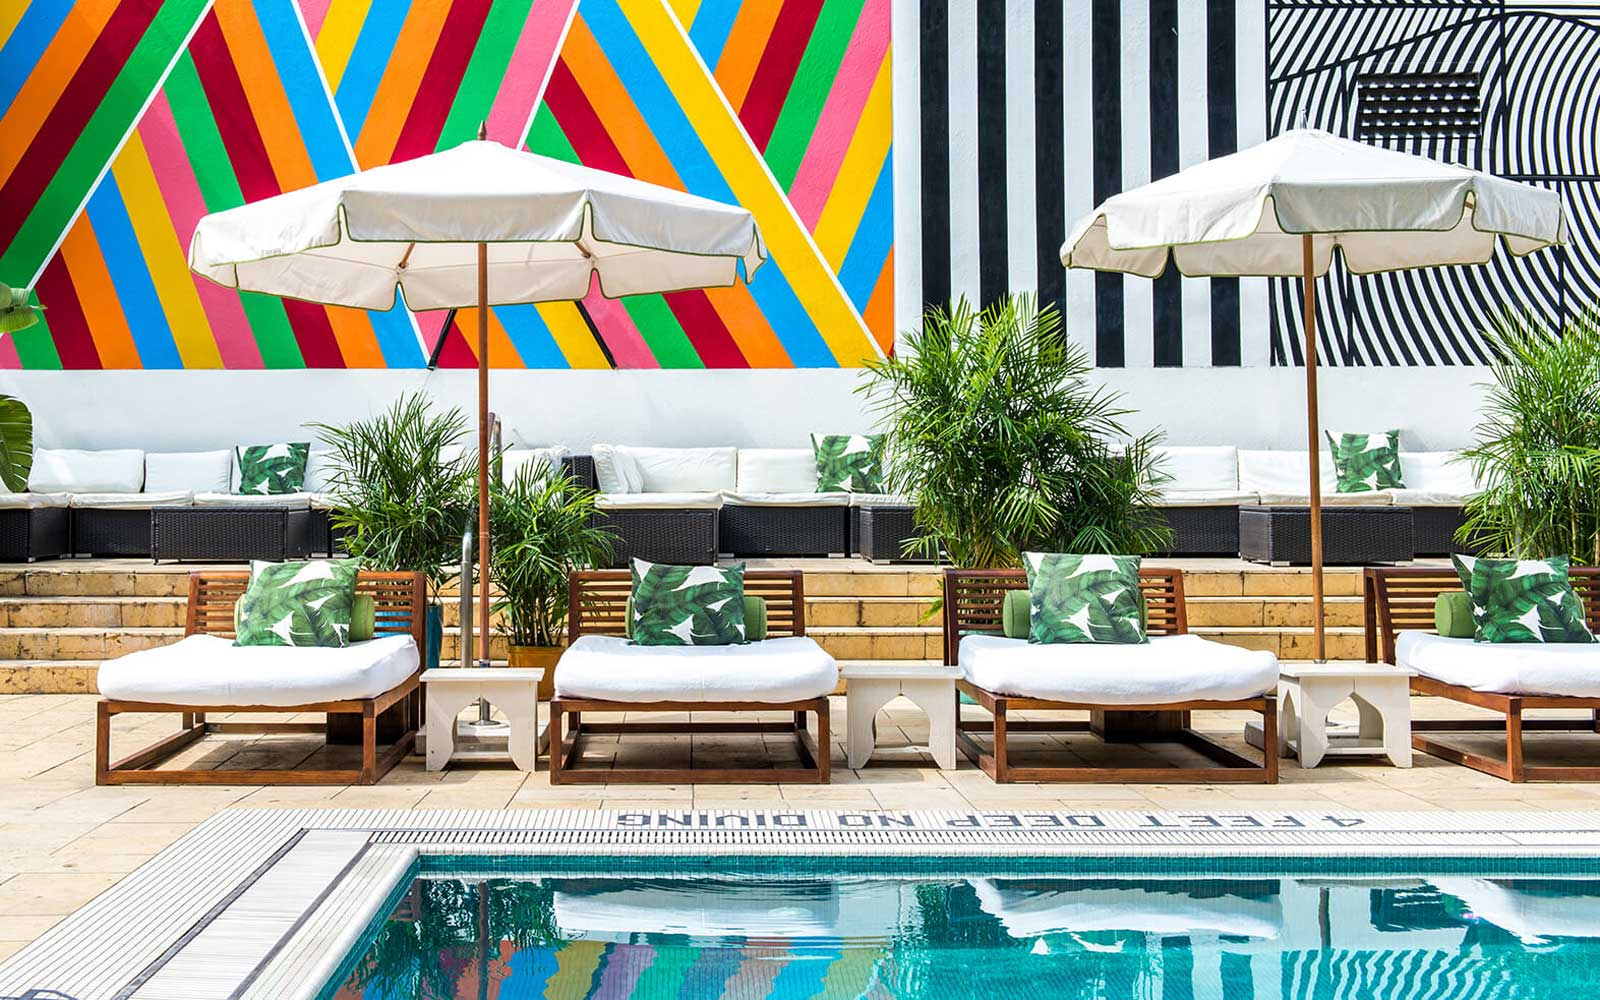 McCarren Hotel and Pool, Greenpoint, Brooklyn